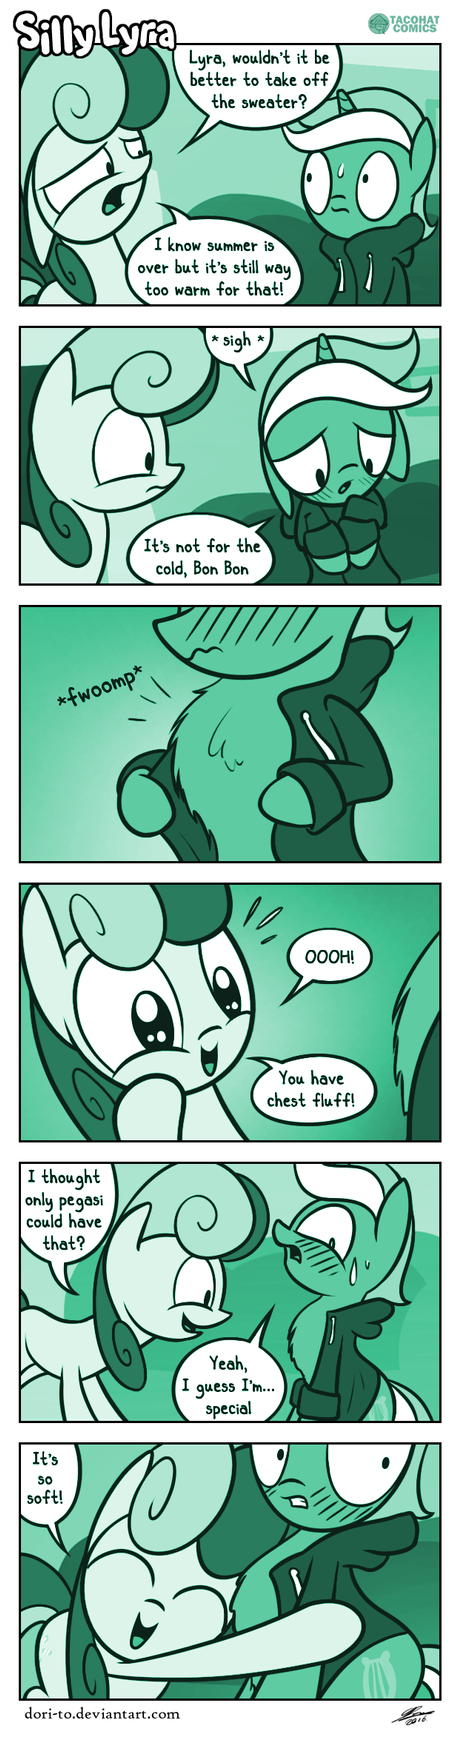 Silly Lyra - Fluffy Fall by Dori-to